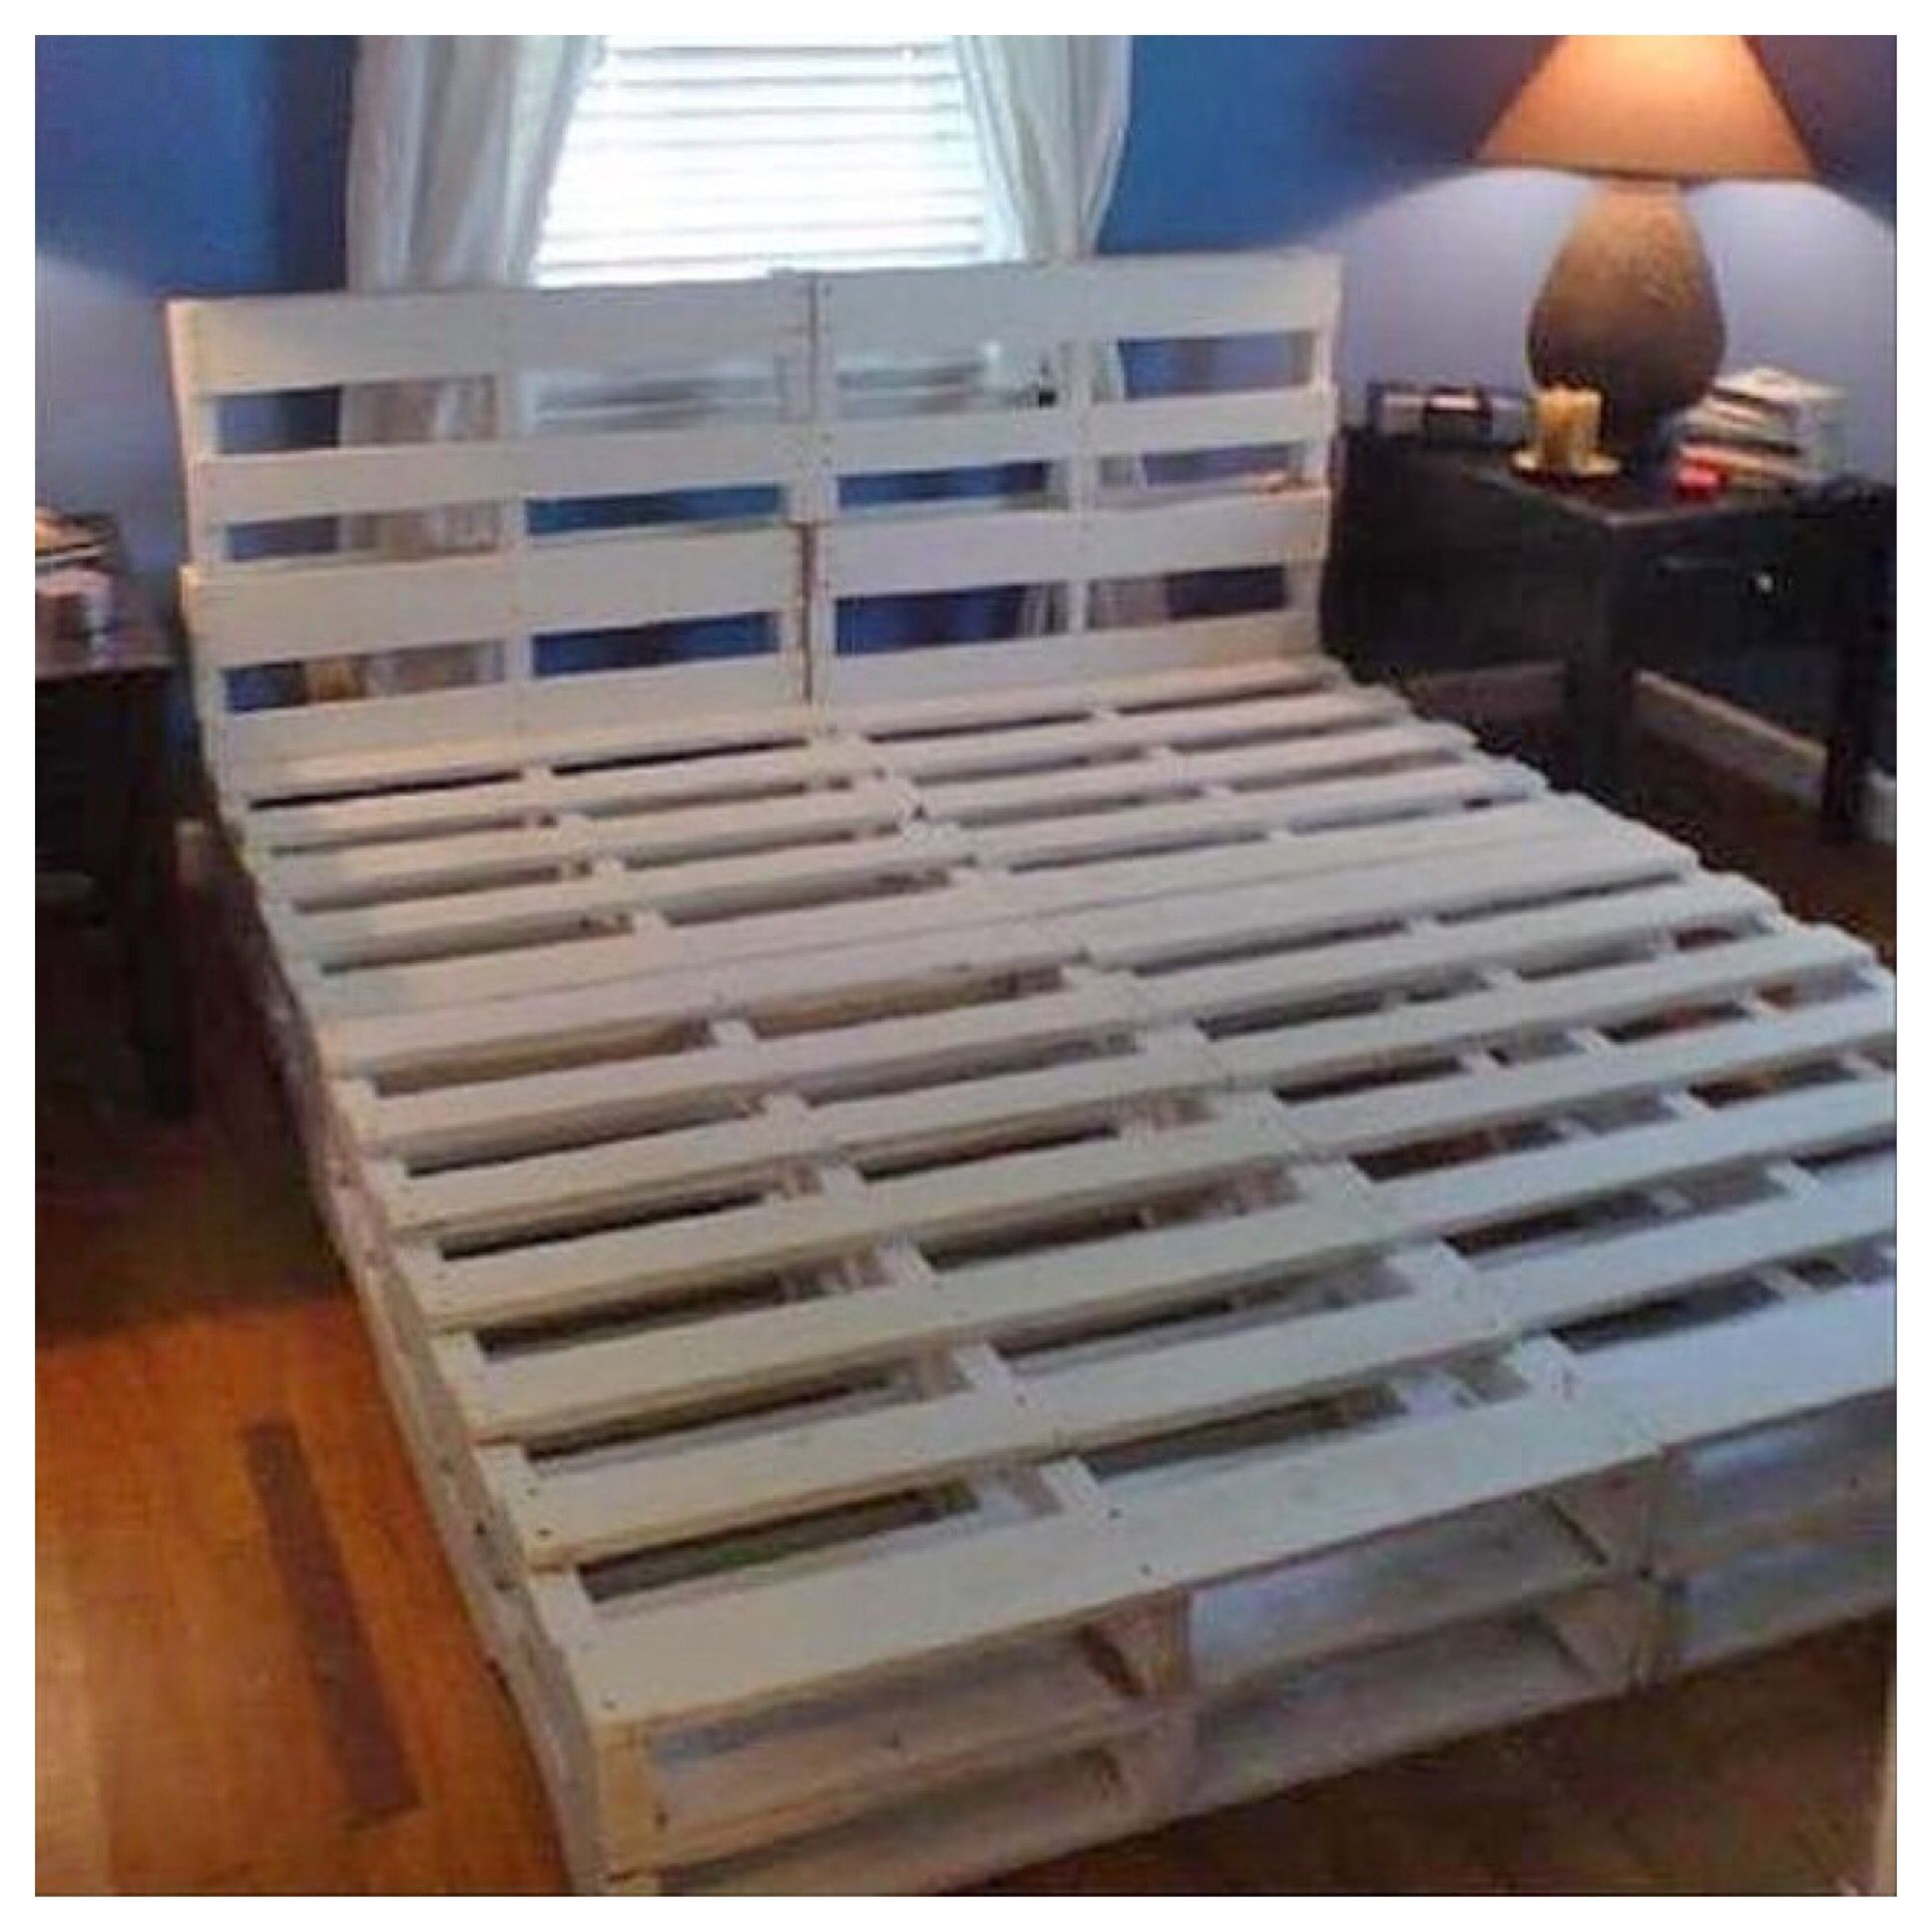 Skid bed, affordable with style Pallet bed frame diy